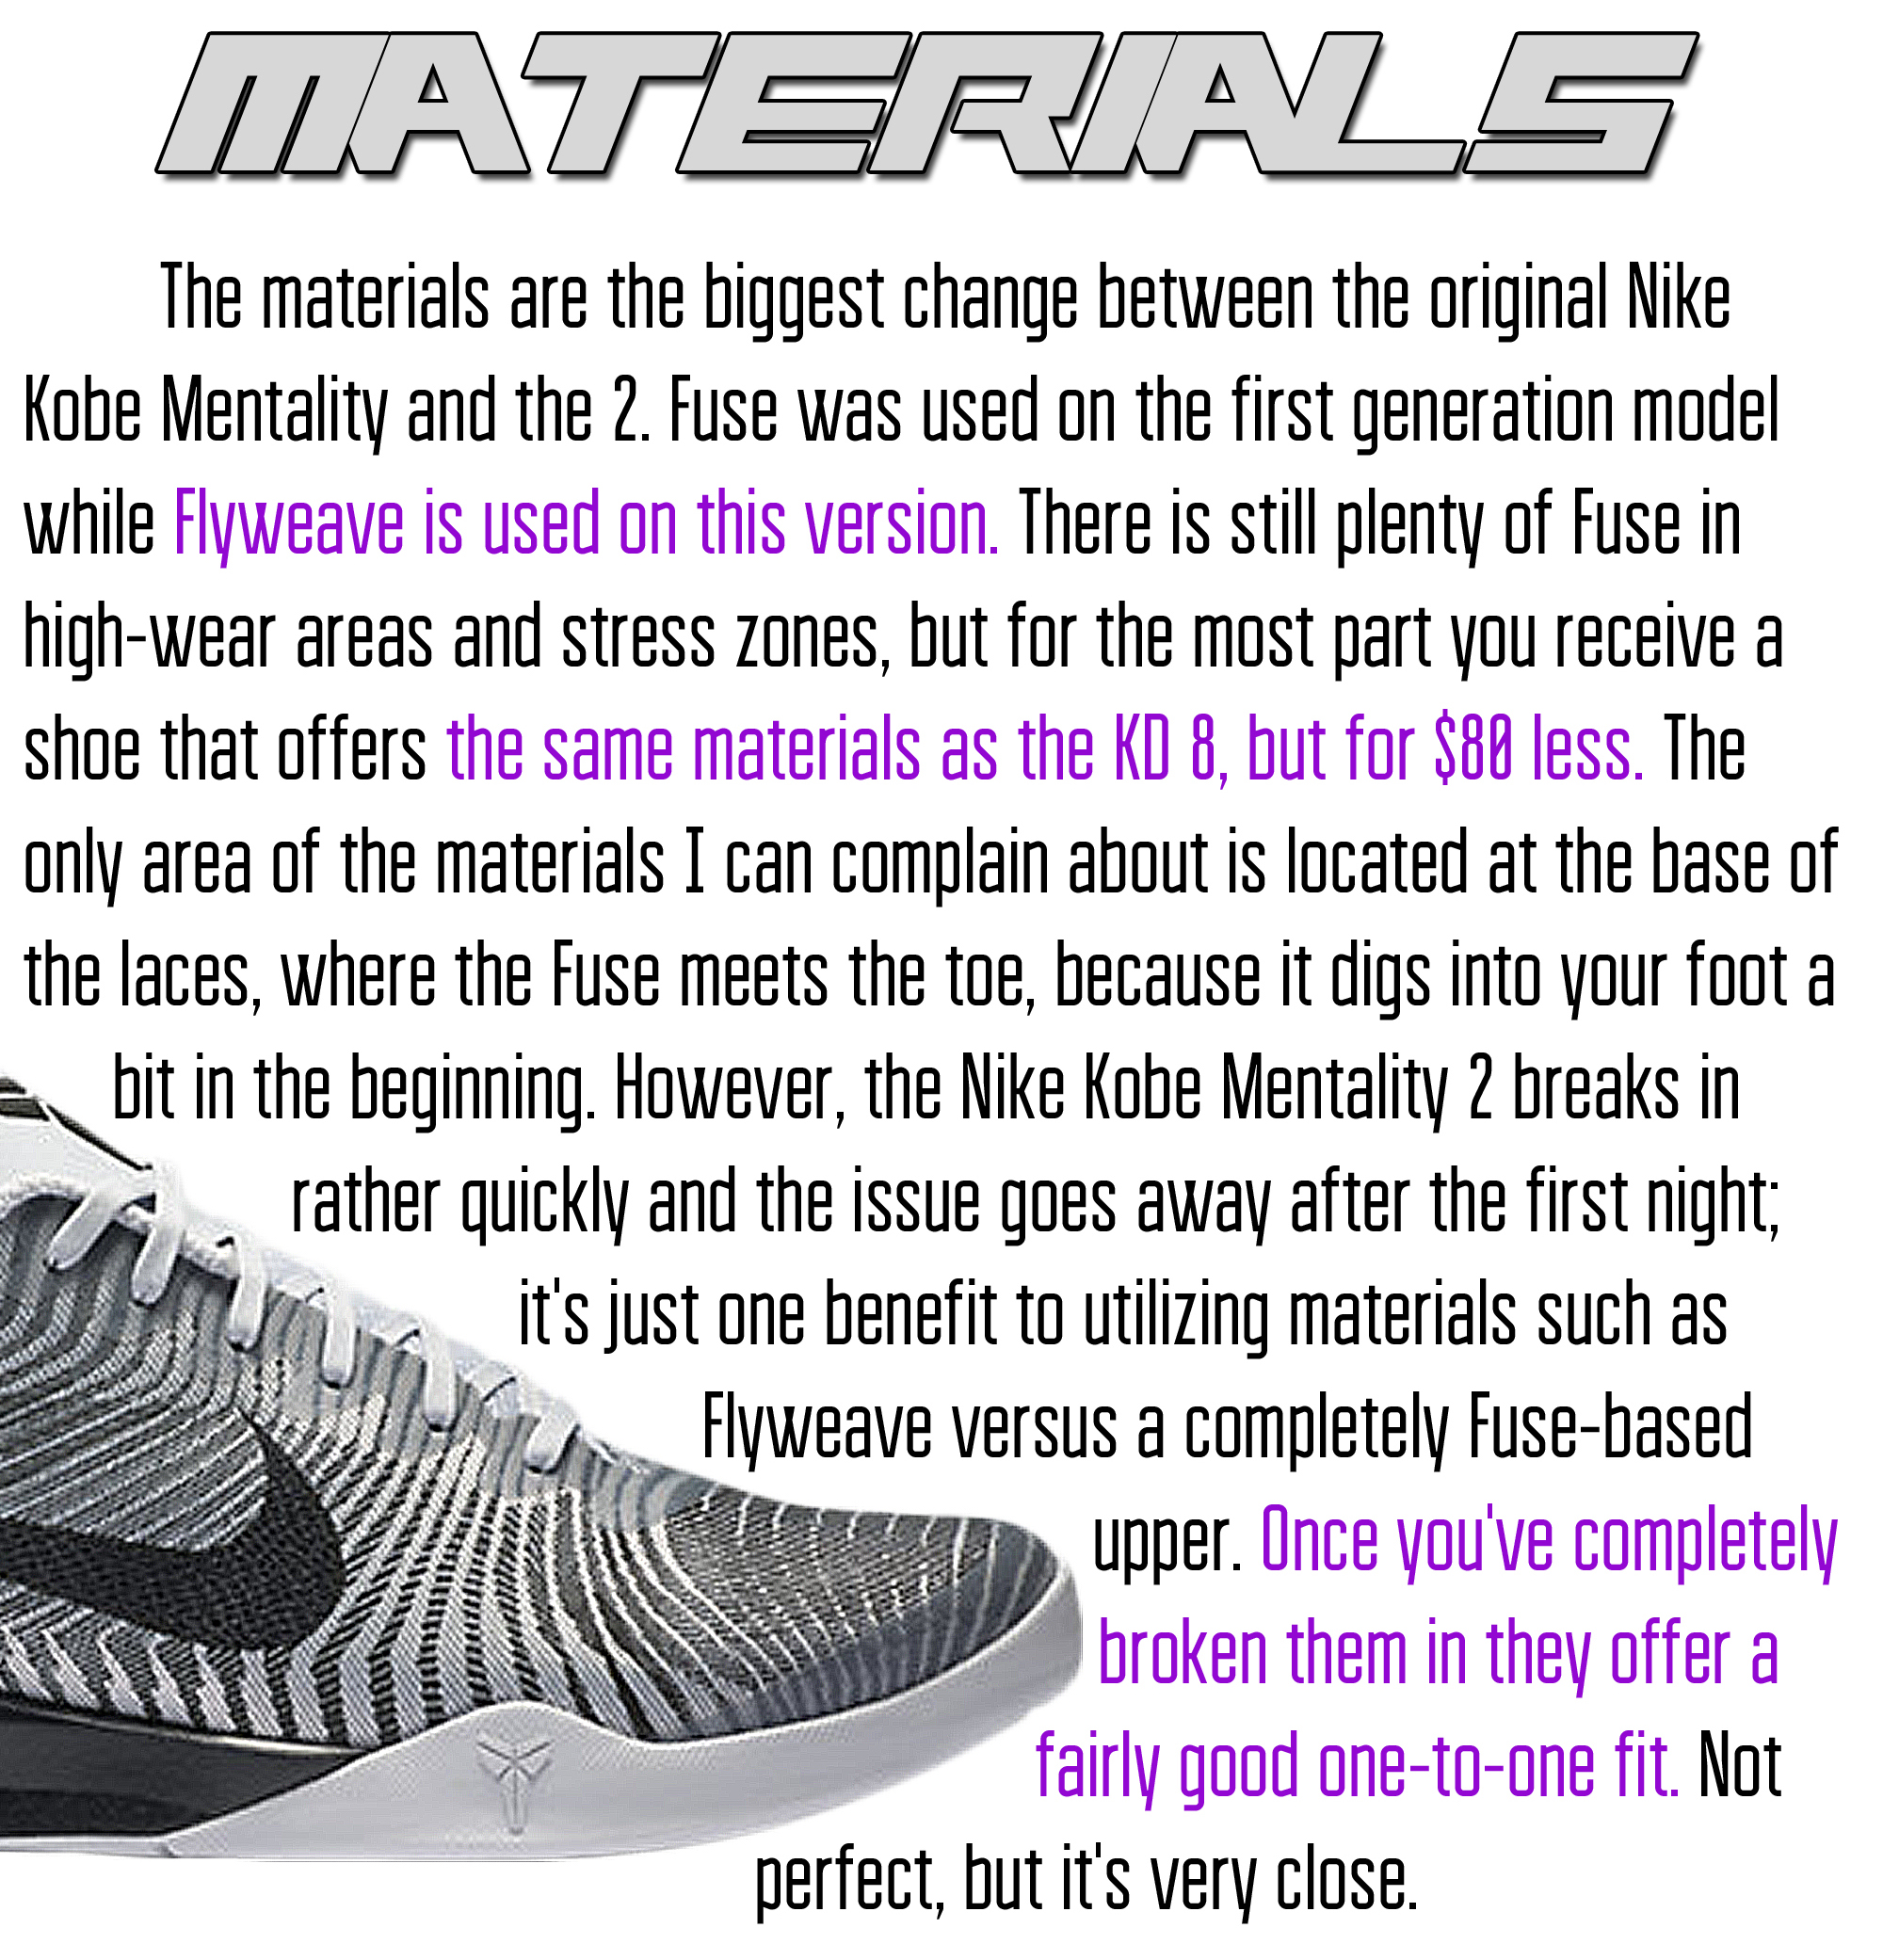 Mentality 2 - Materials